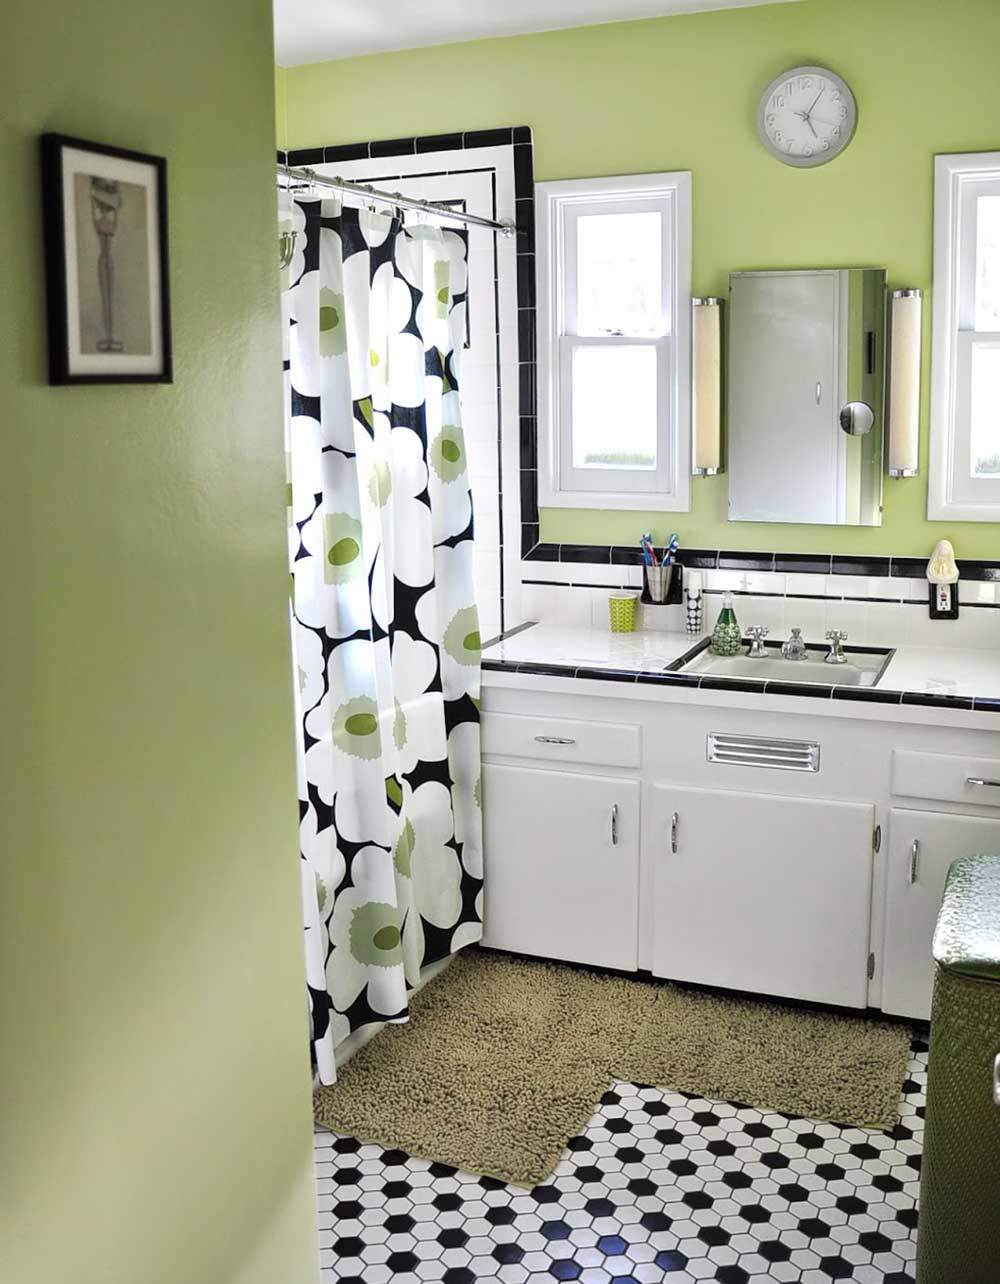 Dawn creates a classic black and white tile bathroom - Retro Renovation